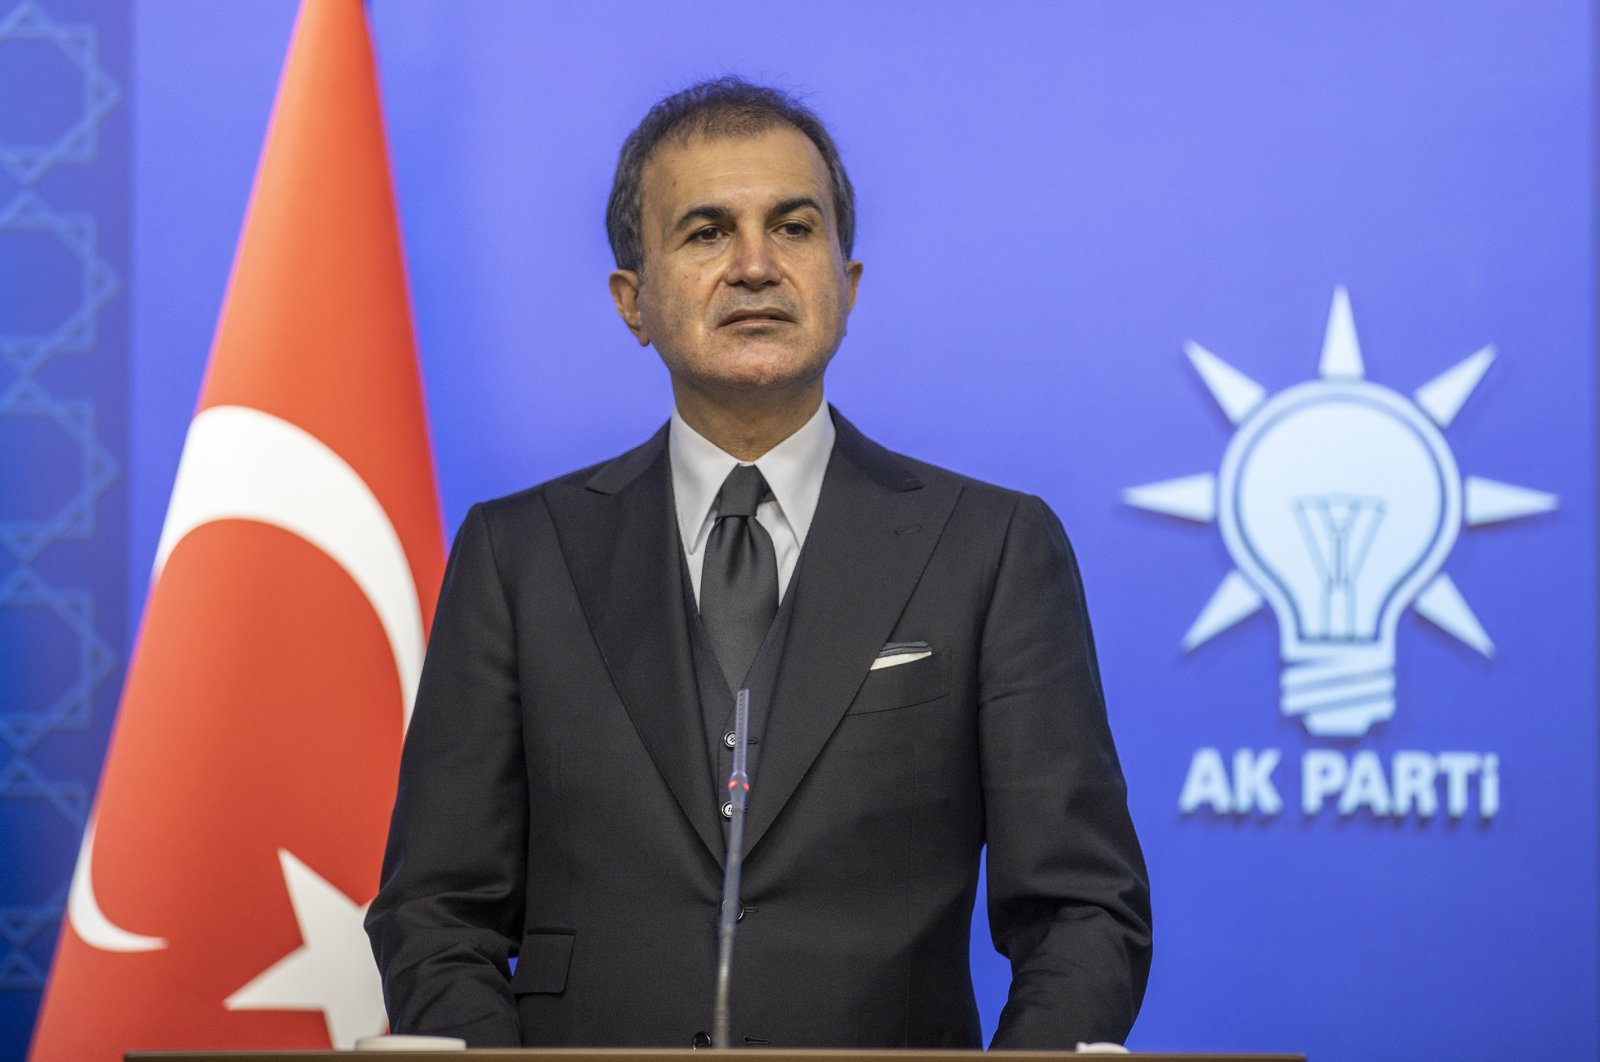 Justice and Development Party (AK Party) spokesperson Ömer Çelik holds a press conference, in Ankara, Turkey, March 24, 2021. (AA Photo)